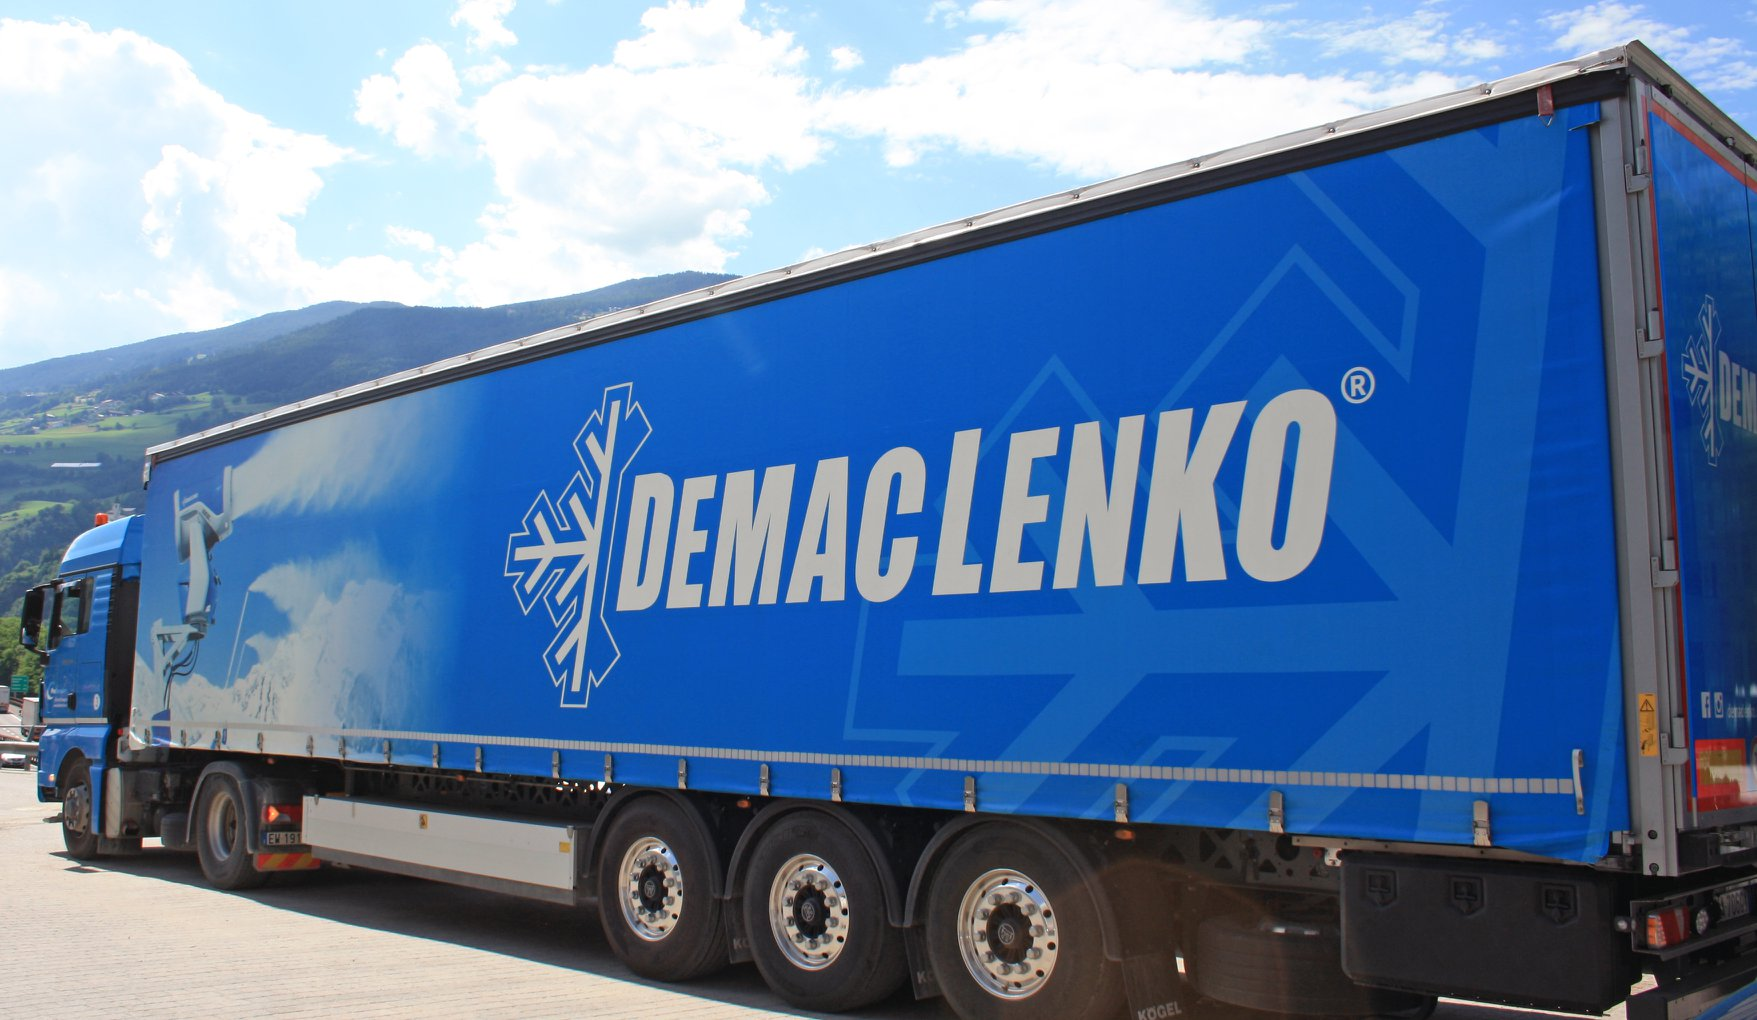 Demaclenko snow systems brings the snow to South America. Photo: Demaclenko.